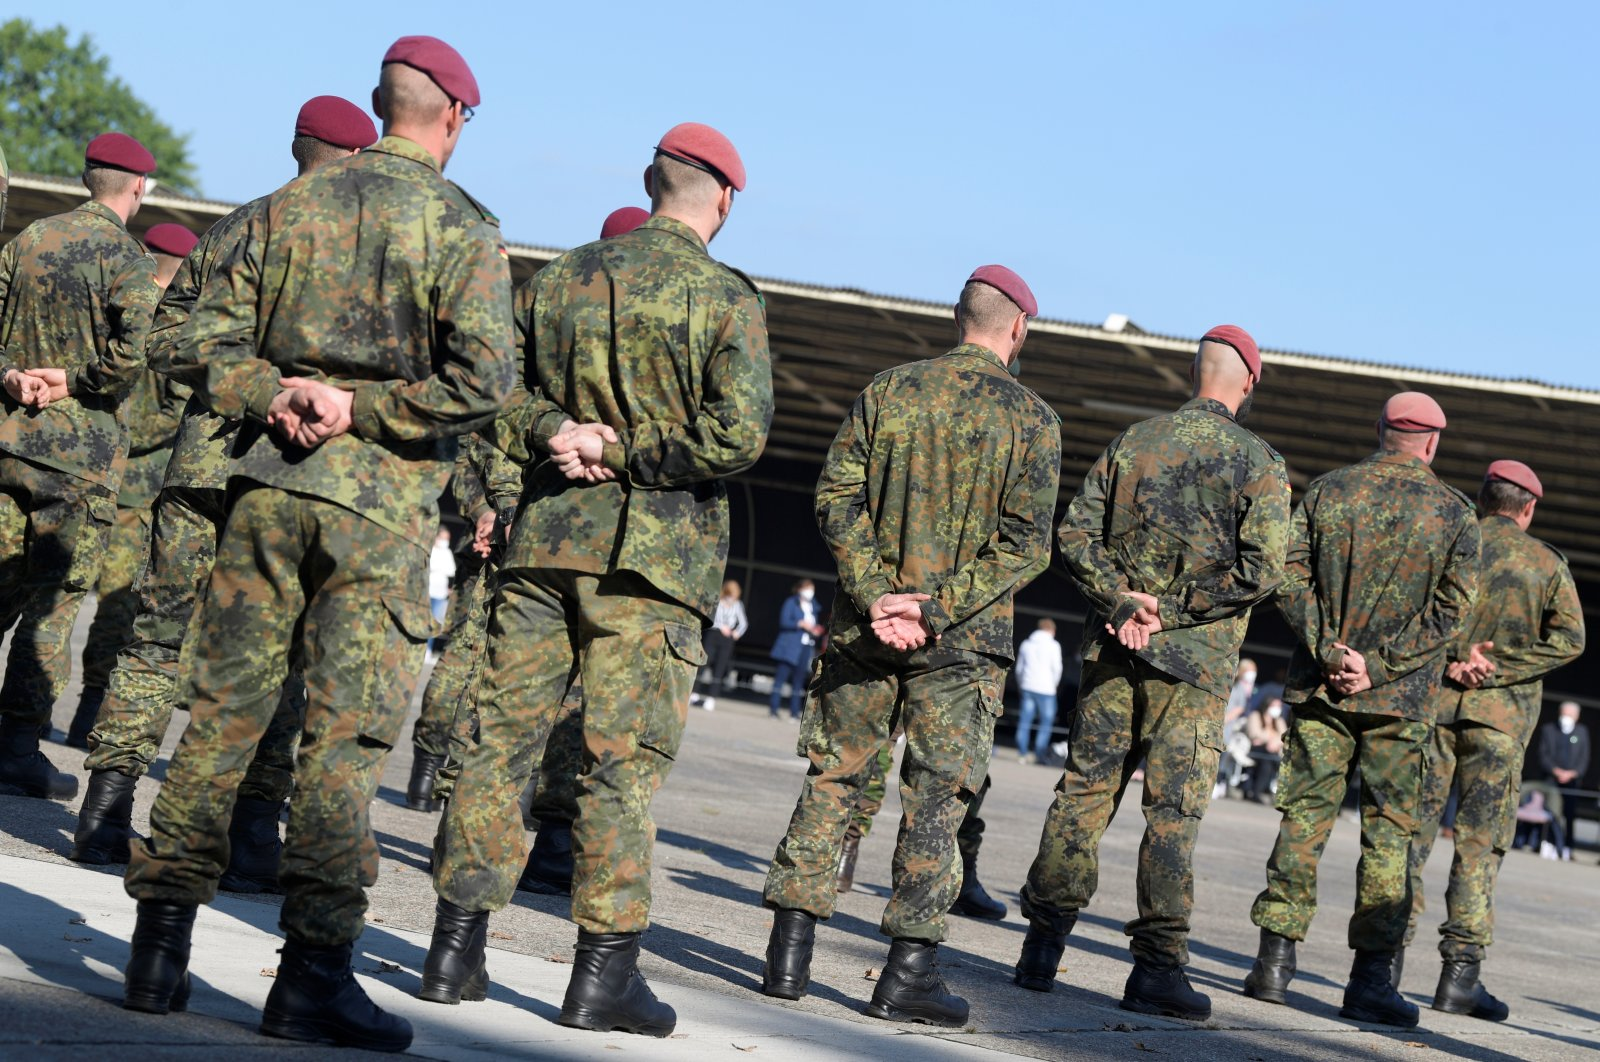 German soldiers attend a ceremony for soldiers who took part in the military evacuation operation from Kabul, in Seedorf, Germany, Sept. 22, 2021. (Reuters Photo)